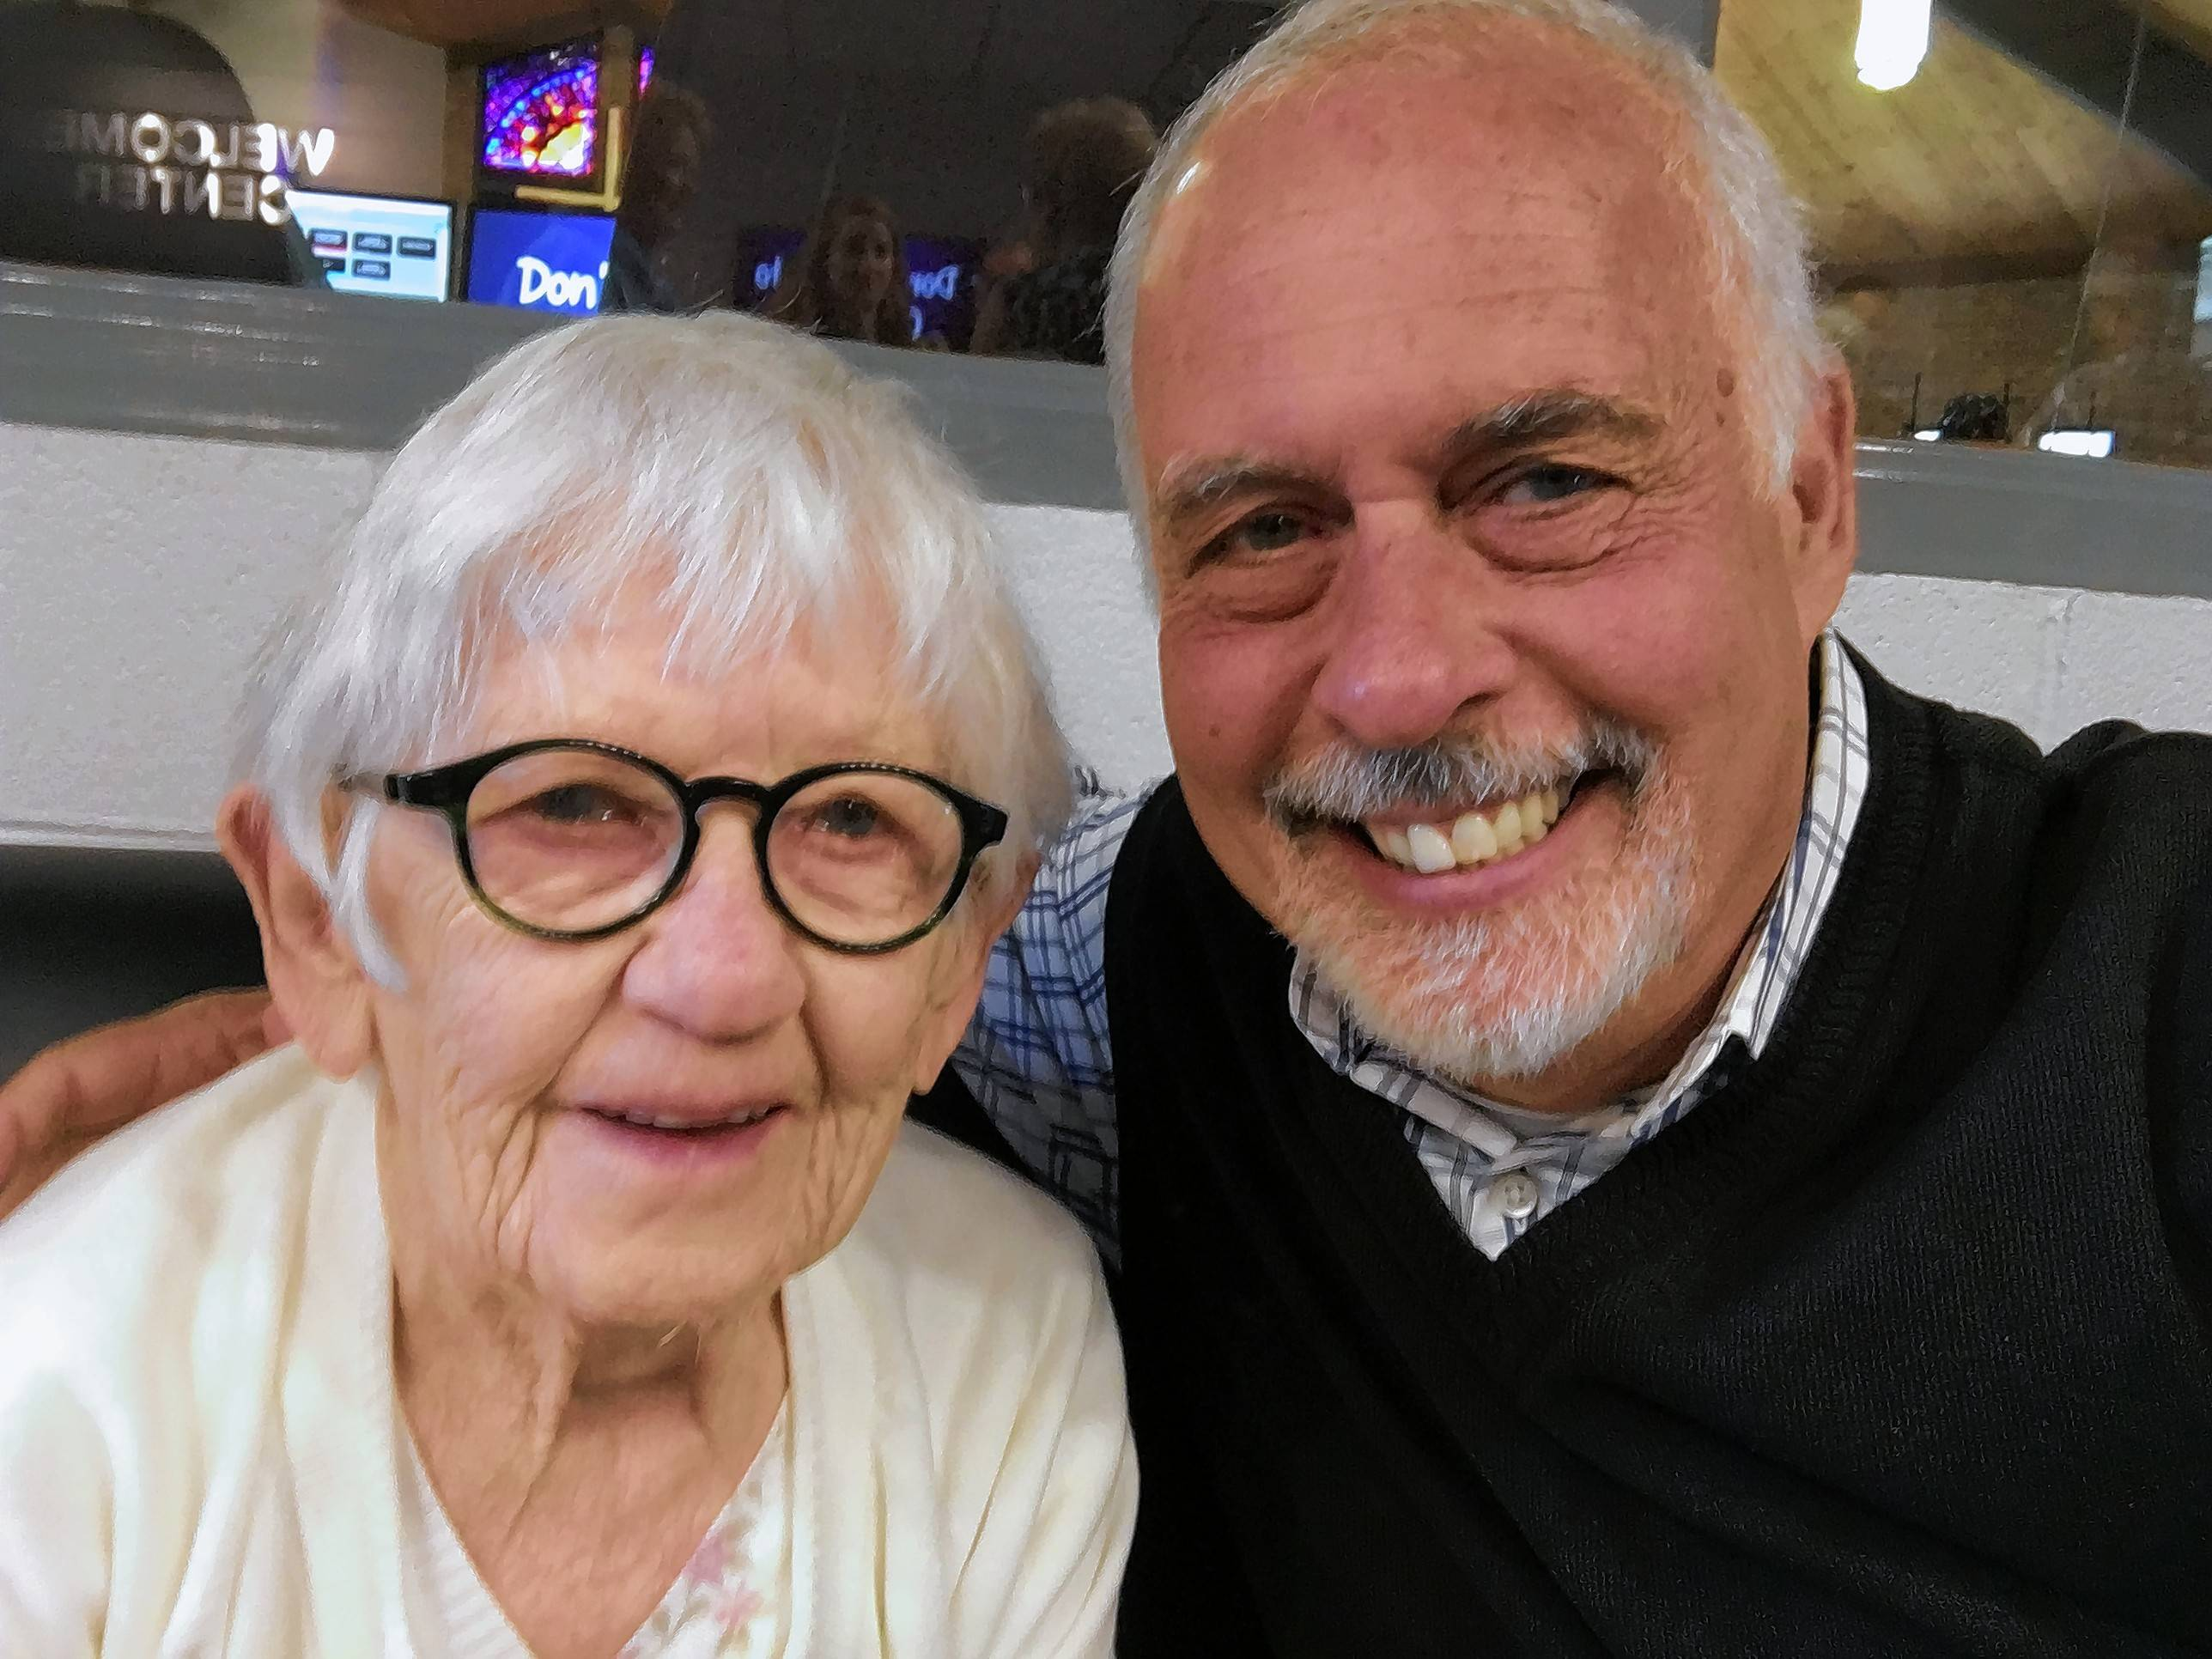 Valentine's Day was the heart of Merle Phillips' love story with her husband, who wrote her a poem every year. Merle, left, shared her story with the Rev. Greg Asimakoupoulos, right.